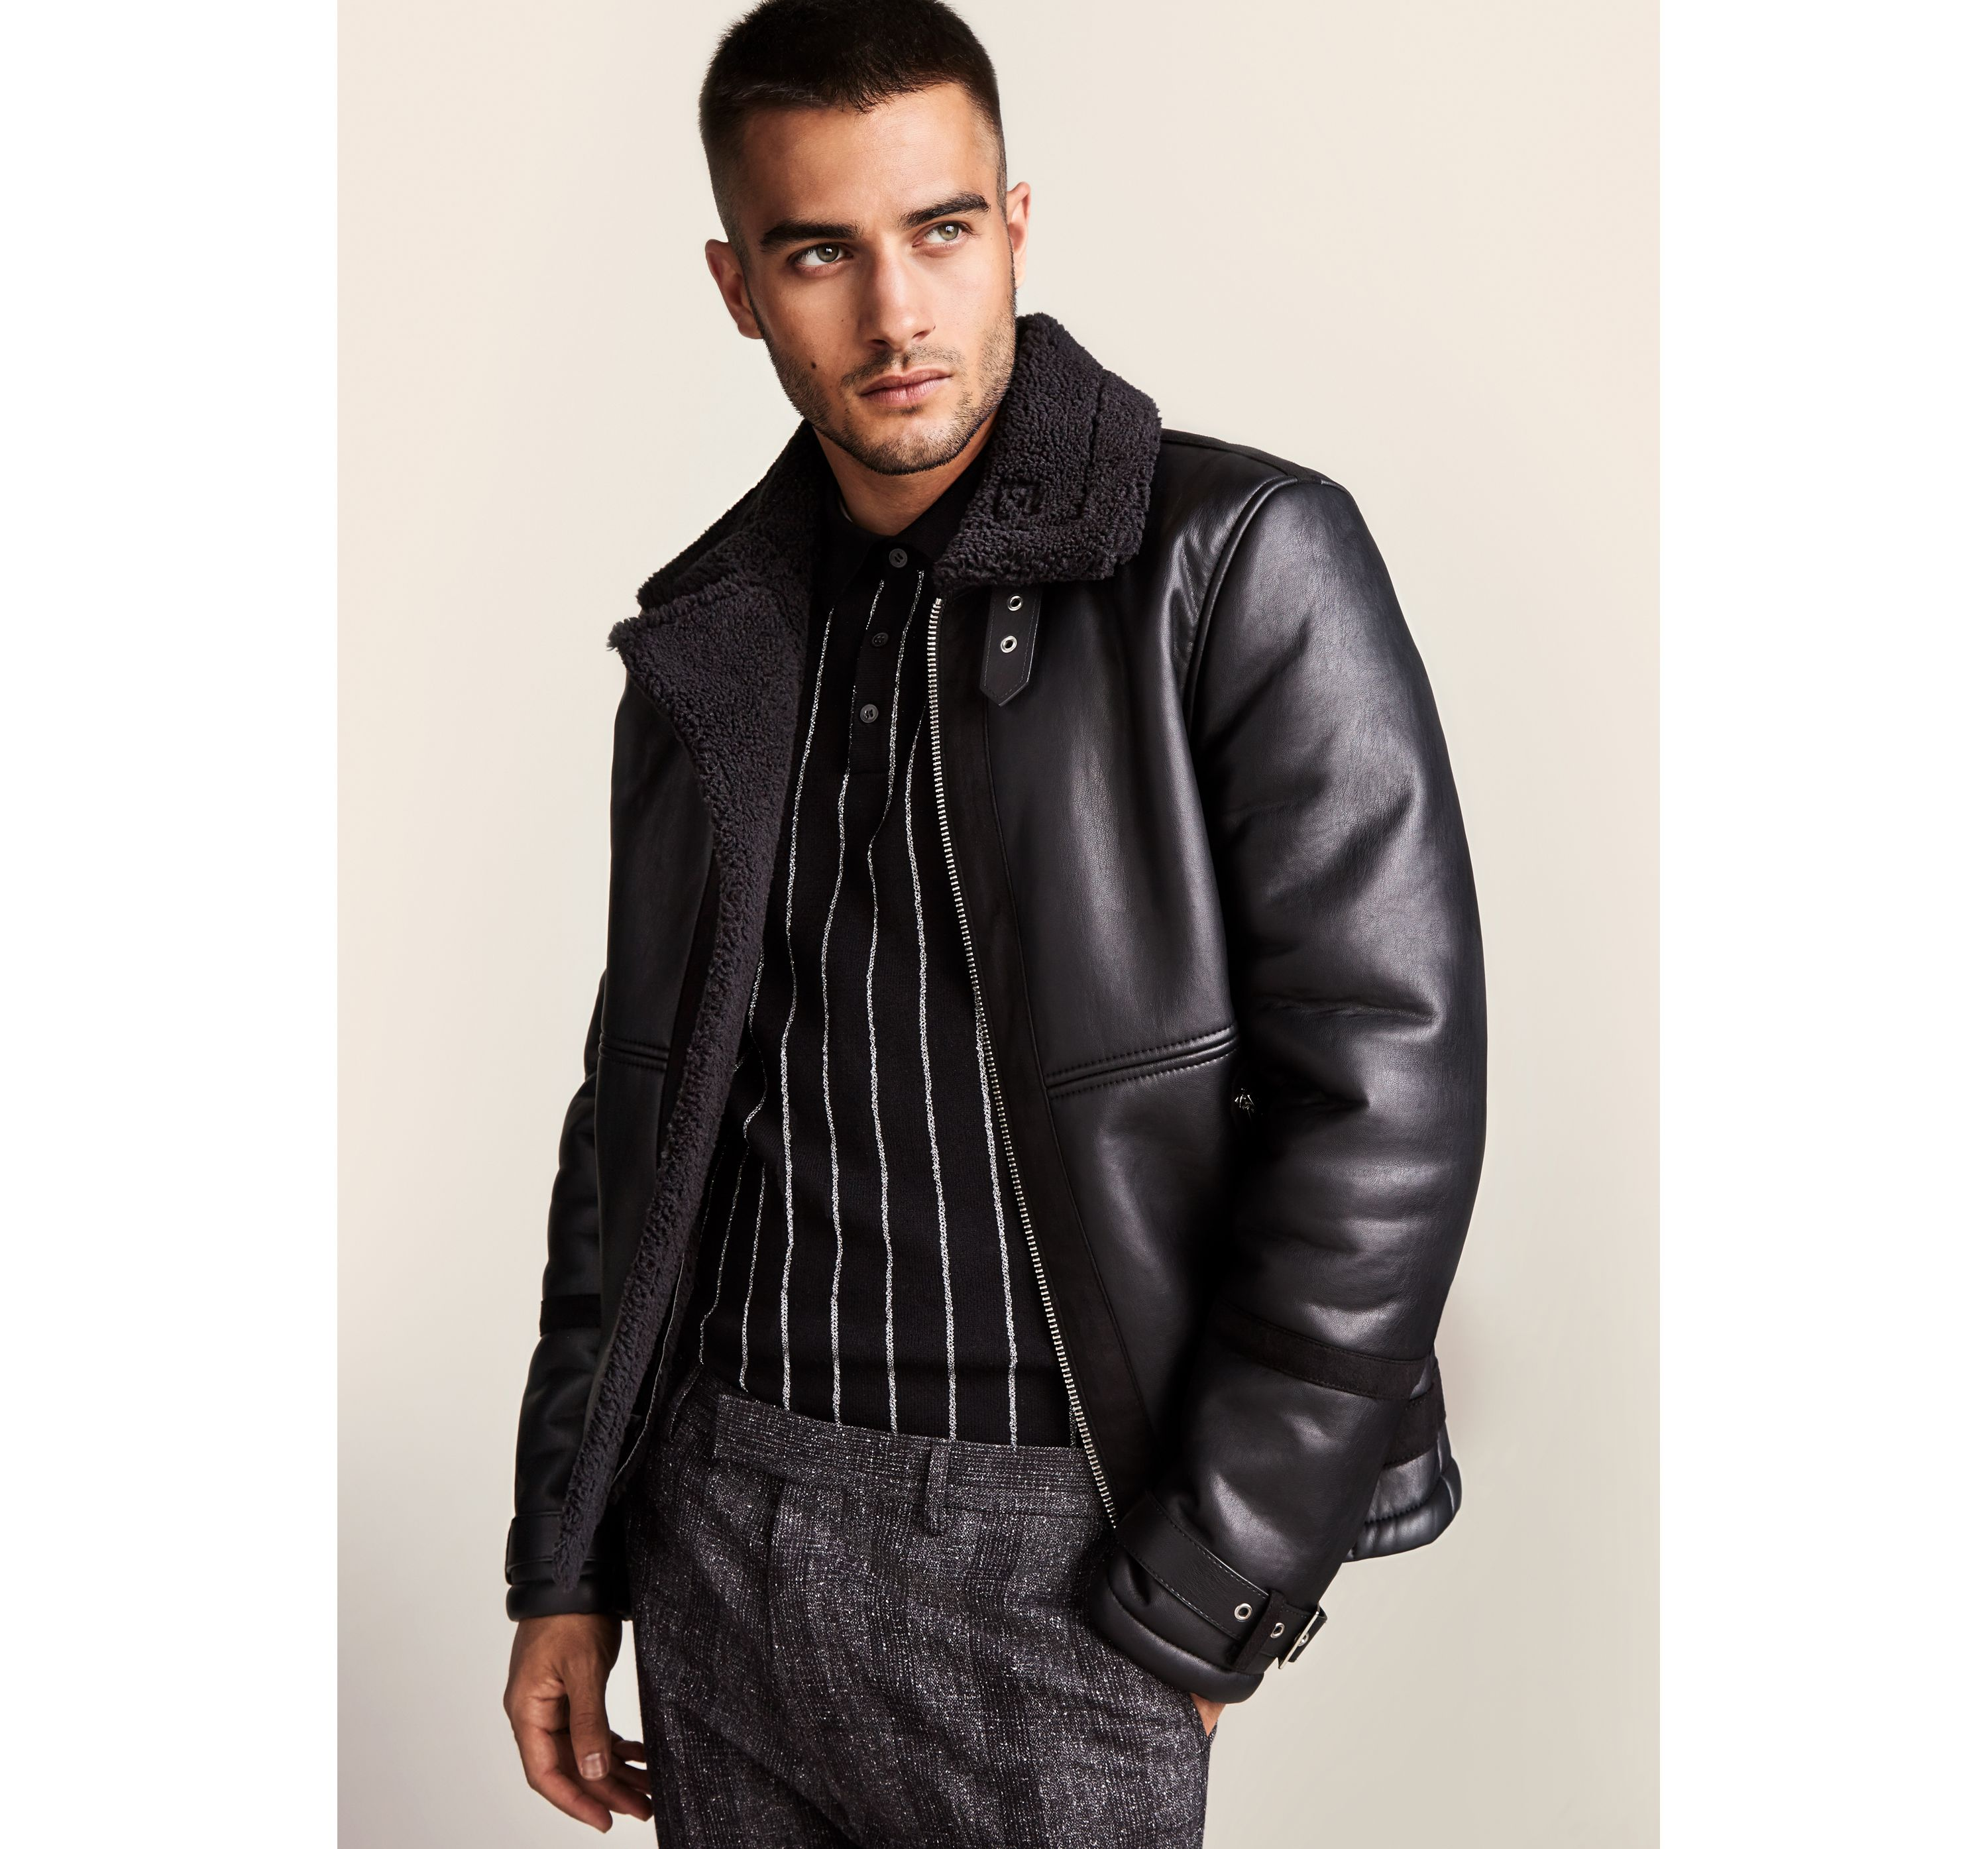 b6c19457c0292 Mens Black faux shearling aviator jacket ... — Thread